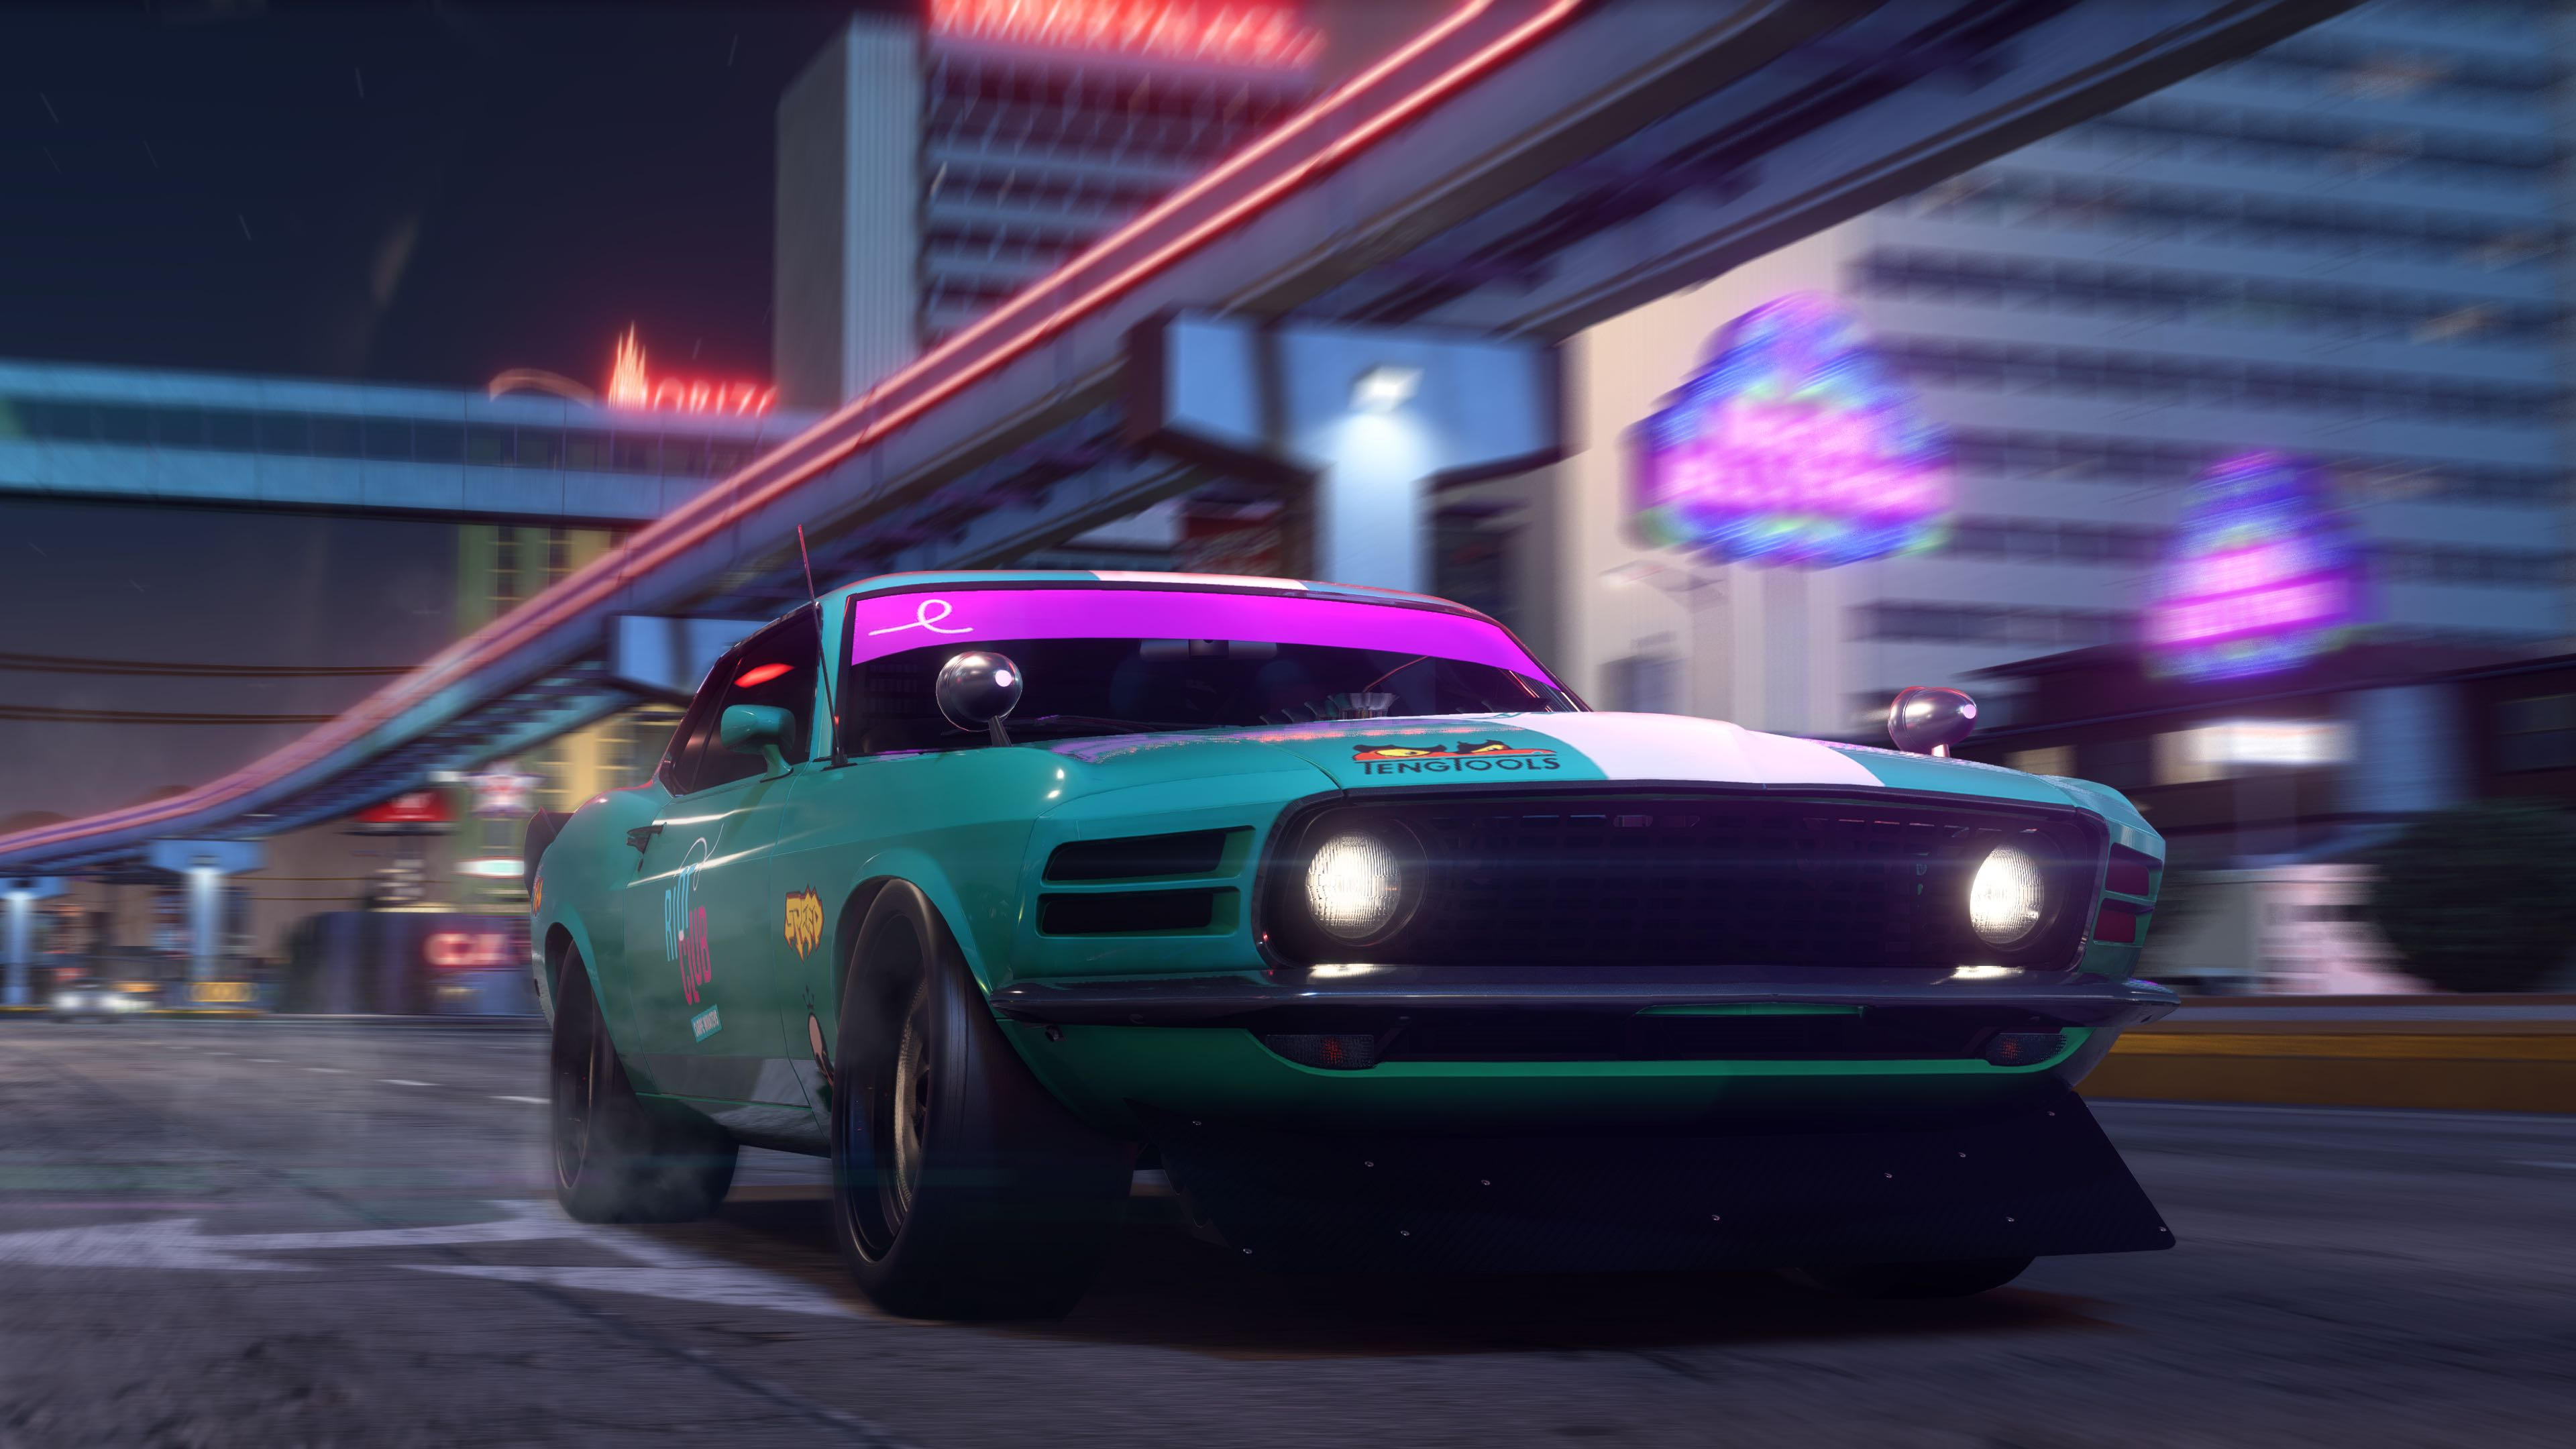 Riot Club Street Leagues Need For Speed Payback 2017 4k Hd Games